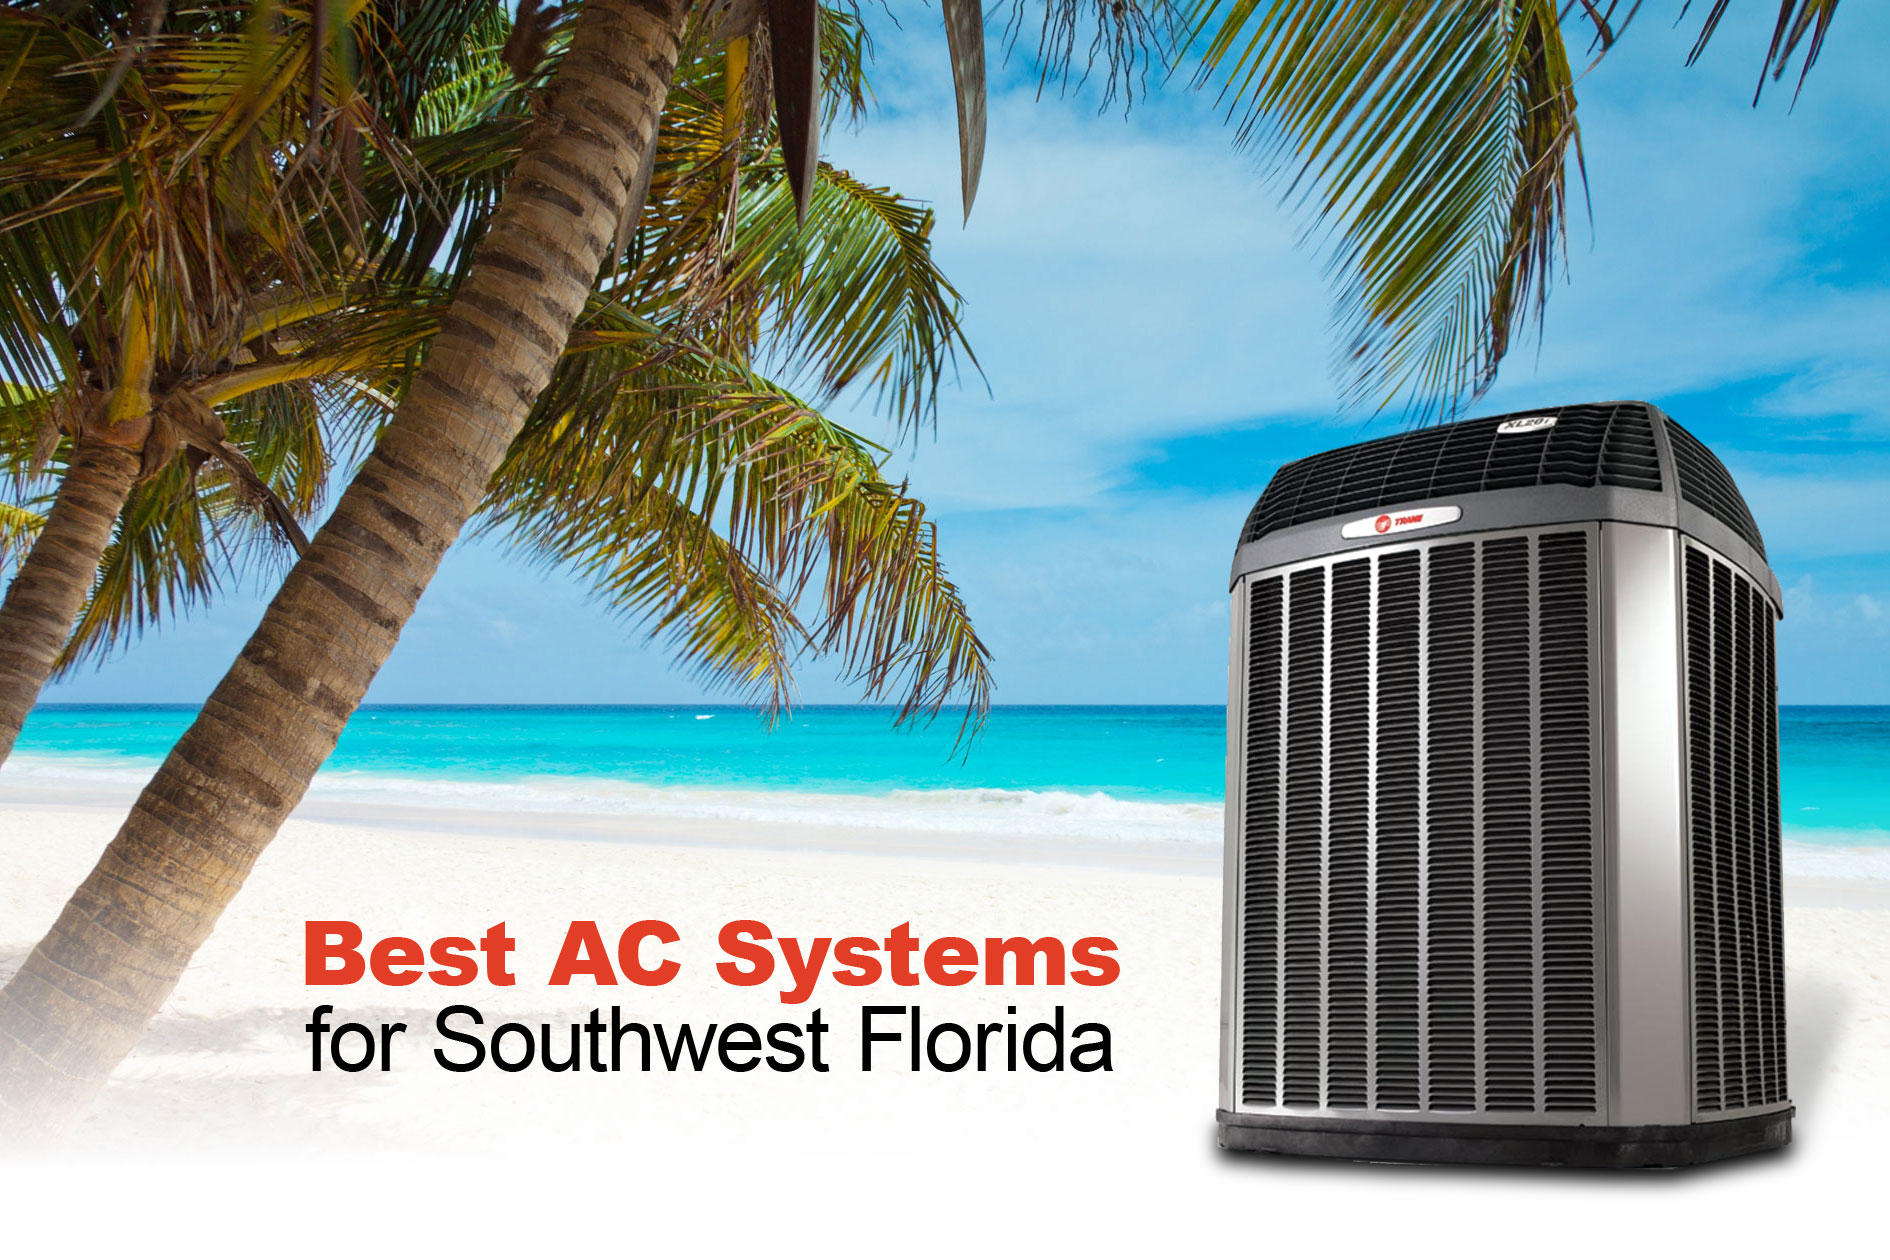 Best AC Systems in Southwest Florida